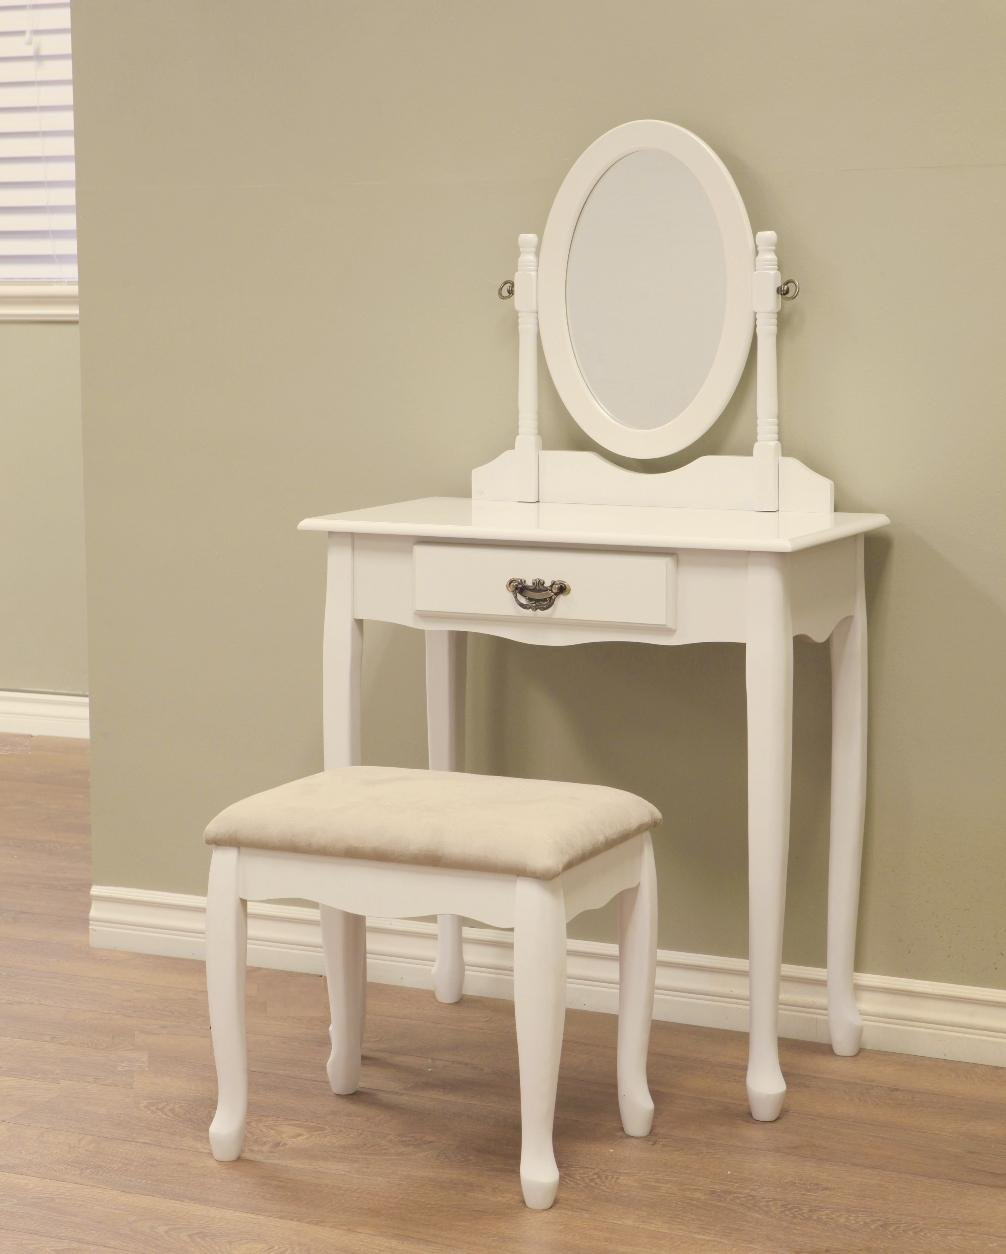 Vanity dressing table stool set bedroom furniture white for White dresser set bedroom furniture